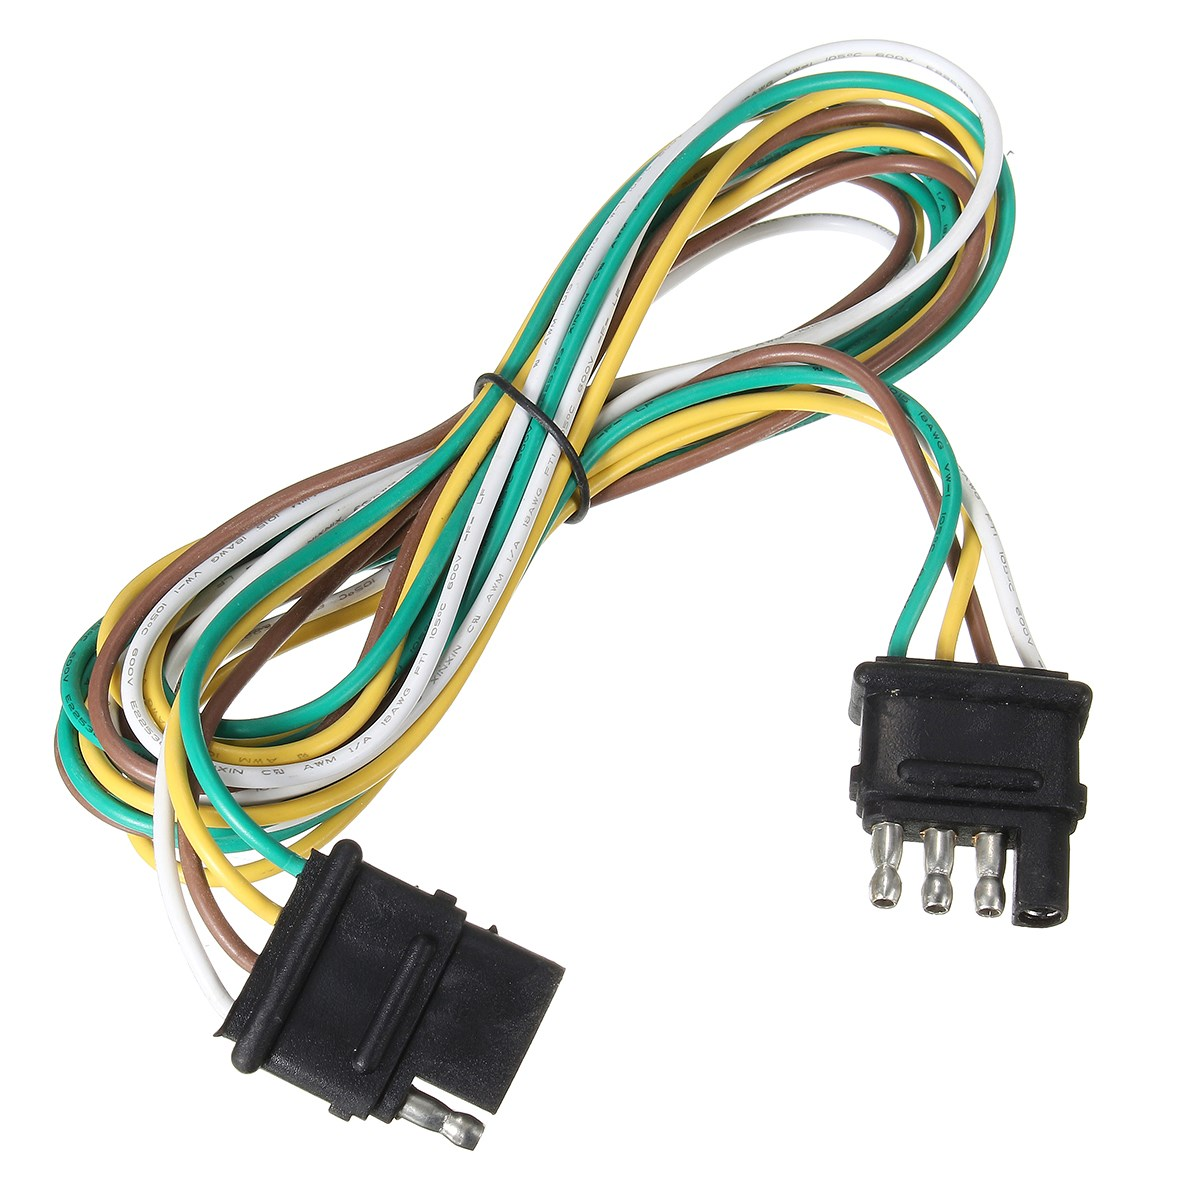 Fantastic 7 Way Guitar Switch Thin Viper Remote Start Wiring Rectangular Hh 5 Way Switch Wiring 5 Way Switch Diagram Young Dimarzio Ep1111 Soft3 Pickup Les Paul Wiring 4 Way Pins Trailer End Light Wiring Harness Bonded 4 Pole Flat ..